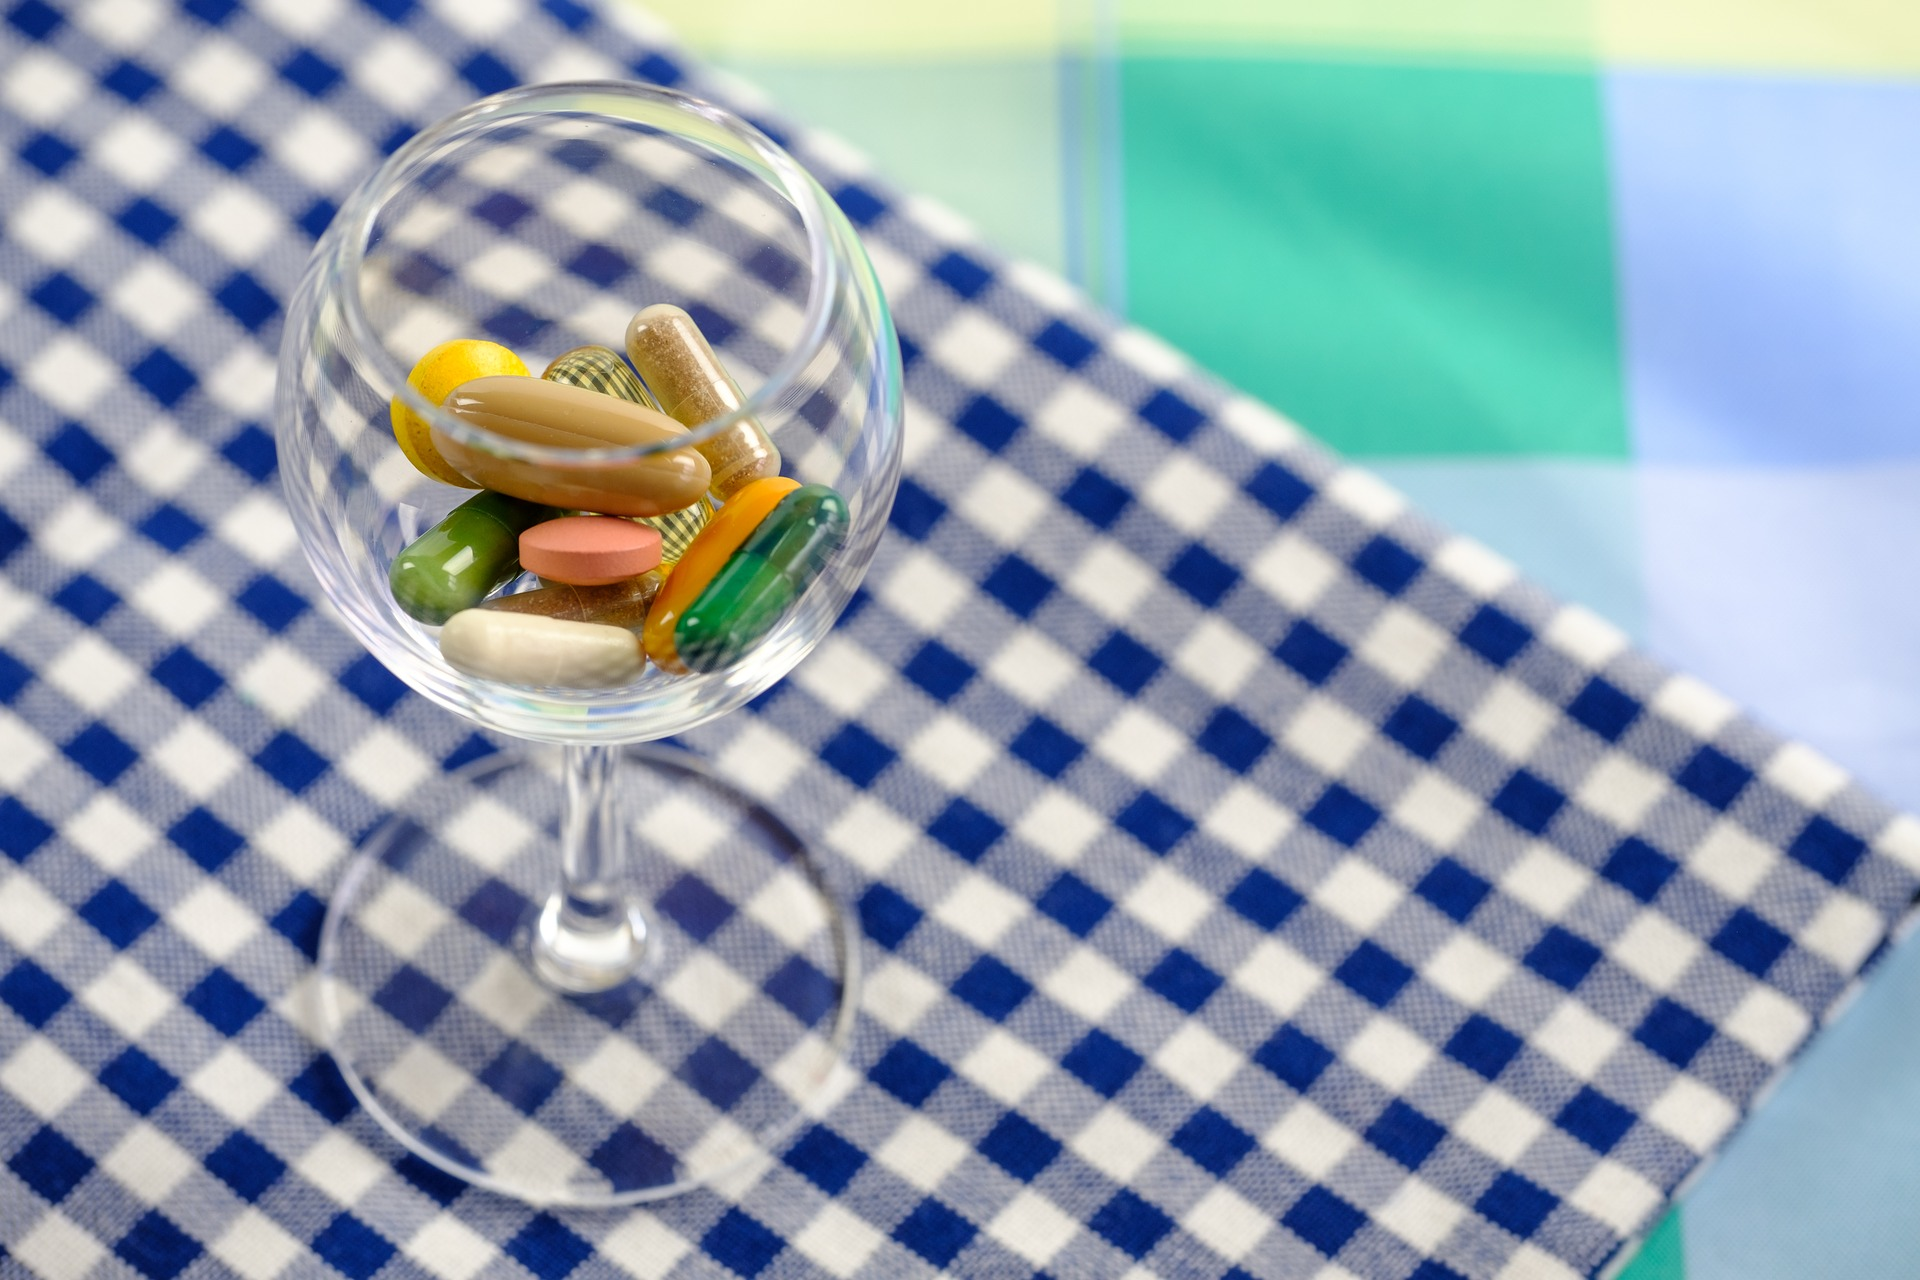 photograph of multicolored vitamins in a glass on a table